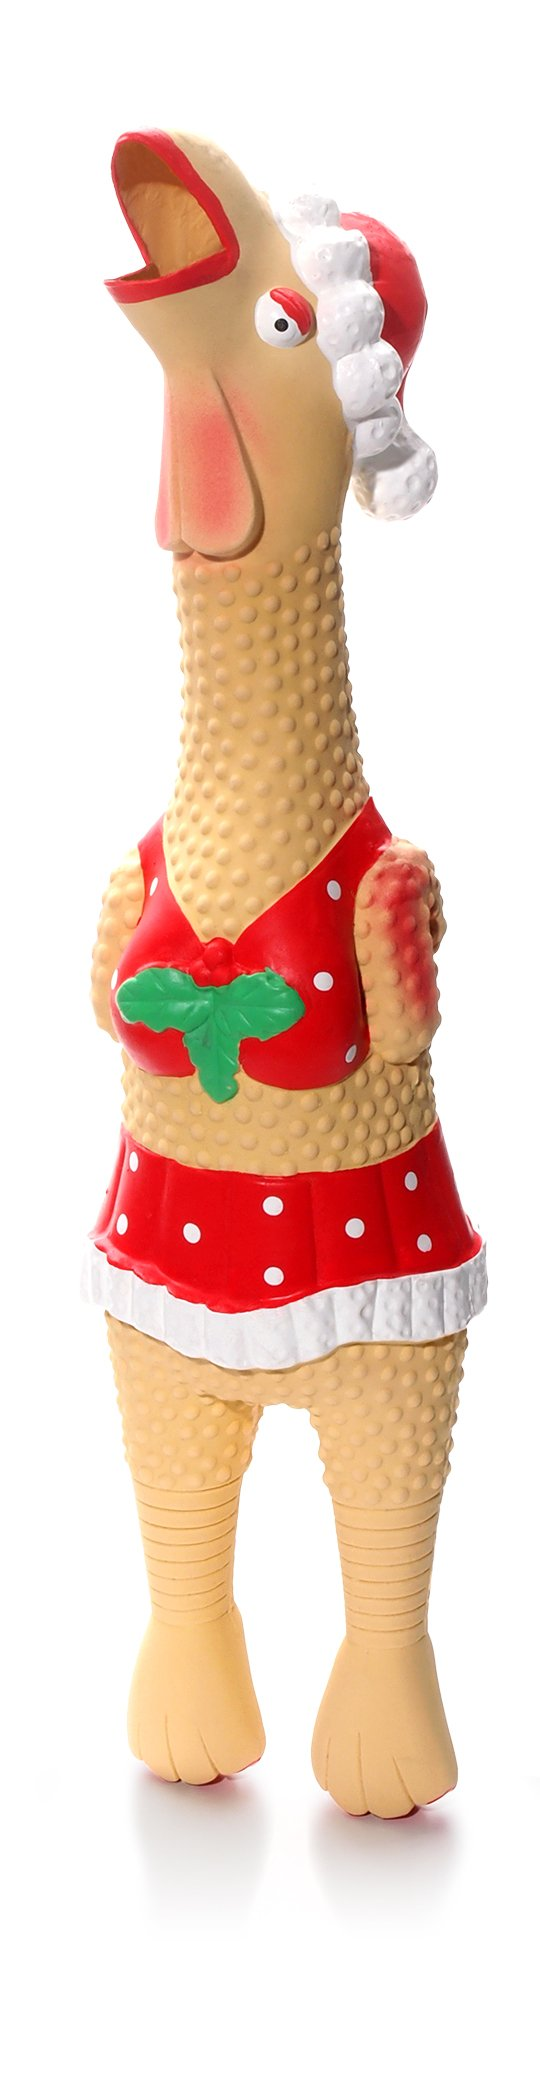 Charming Christmas Henrietta Chicken, Large by Charming (Image #1)